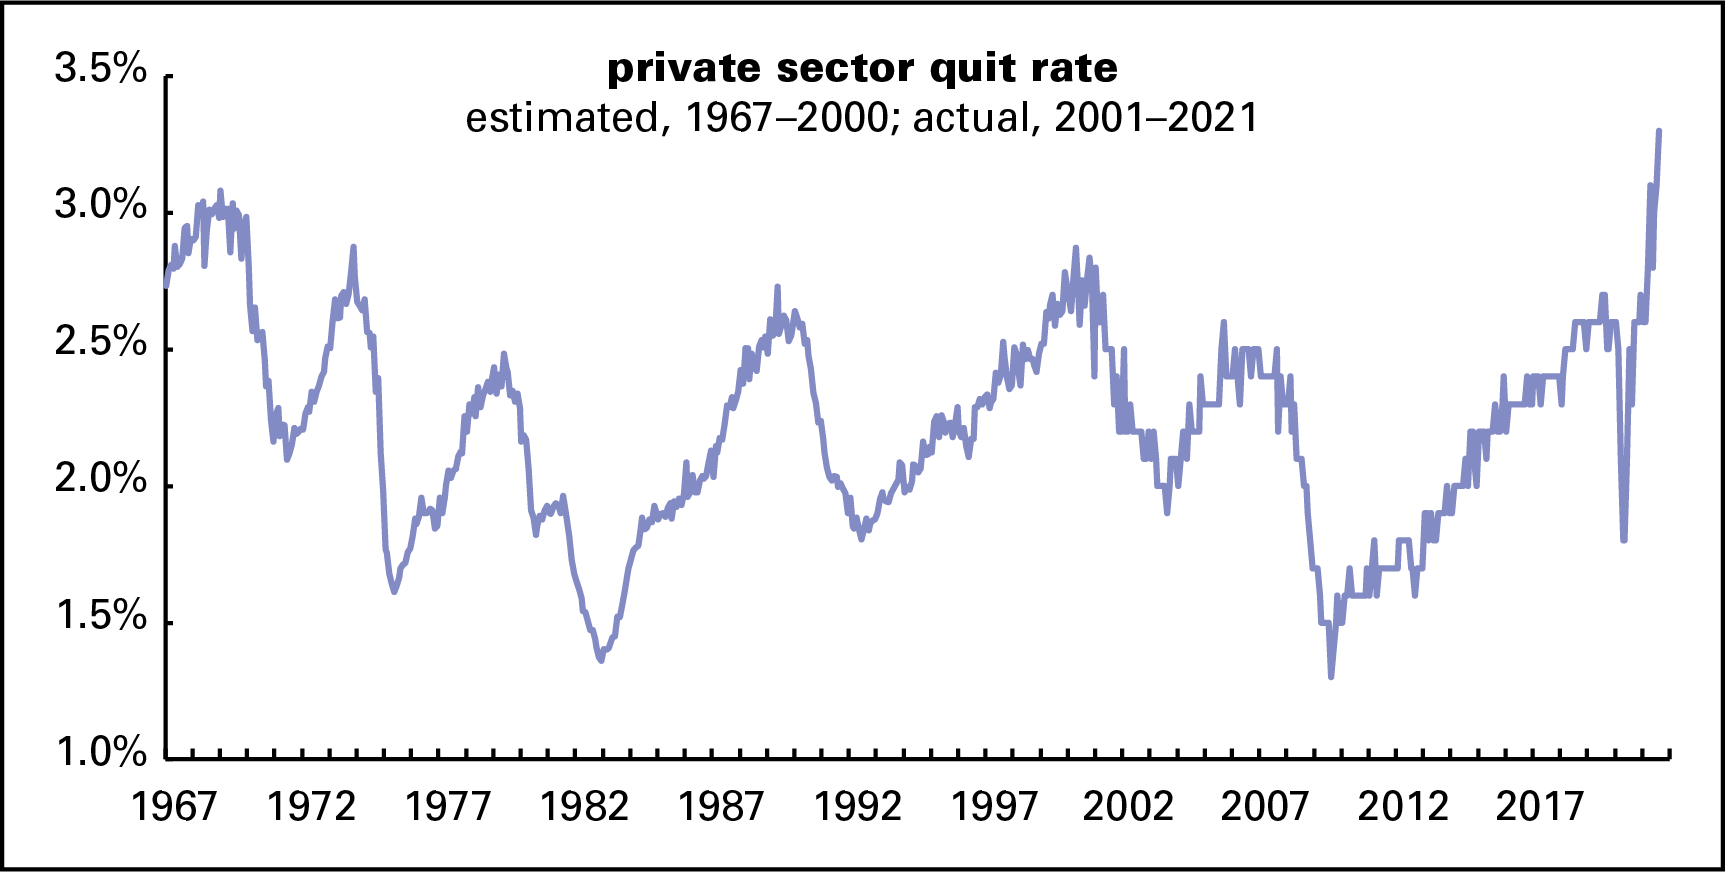 Quit rate - long